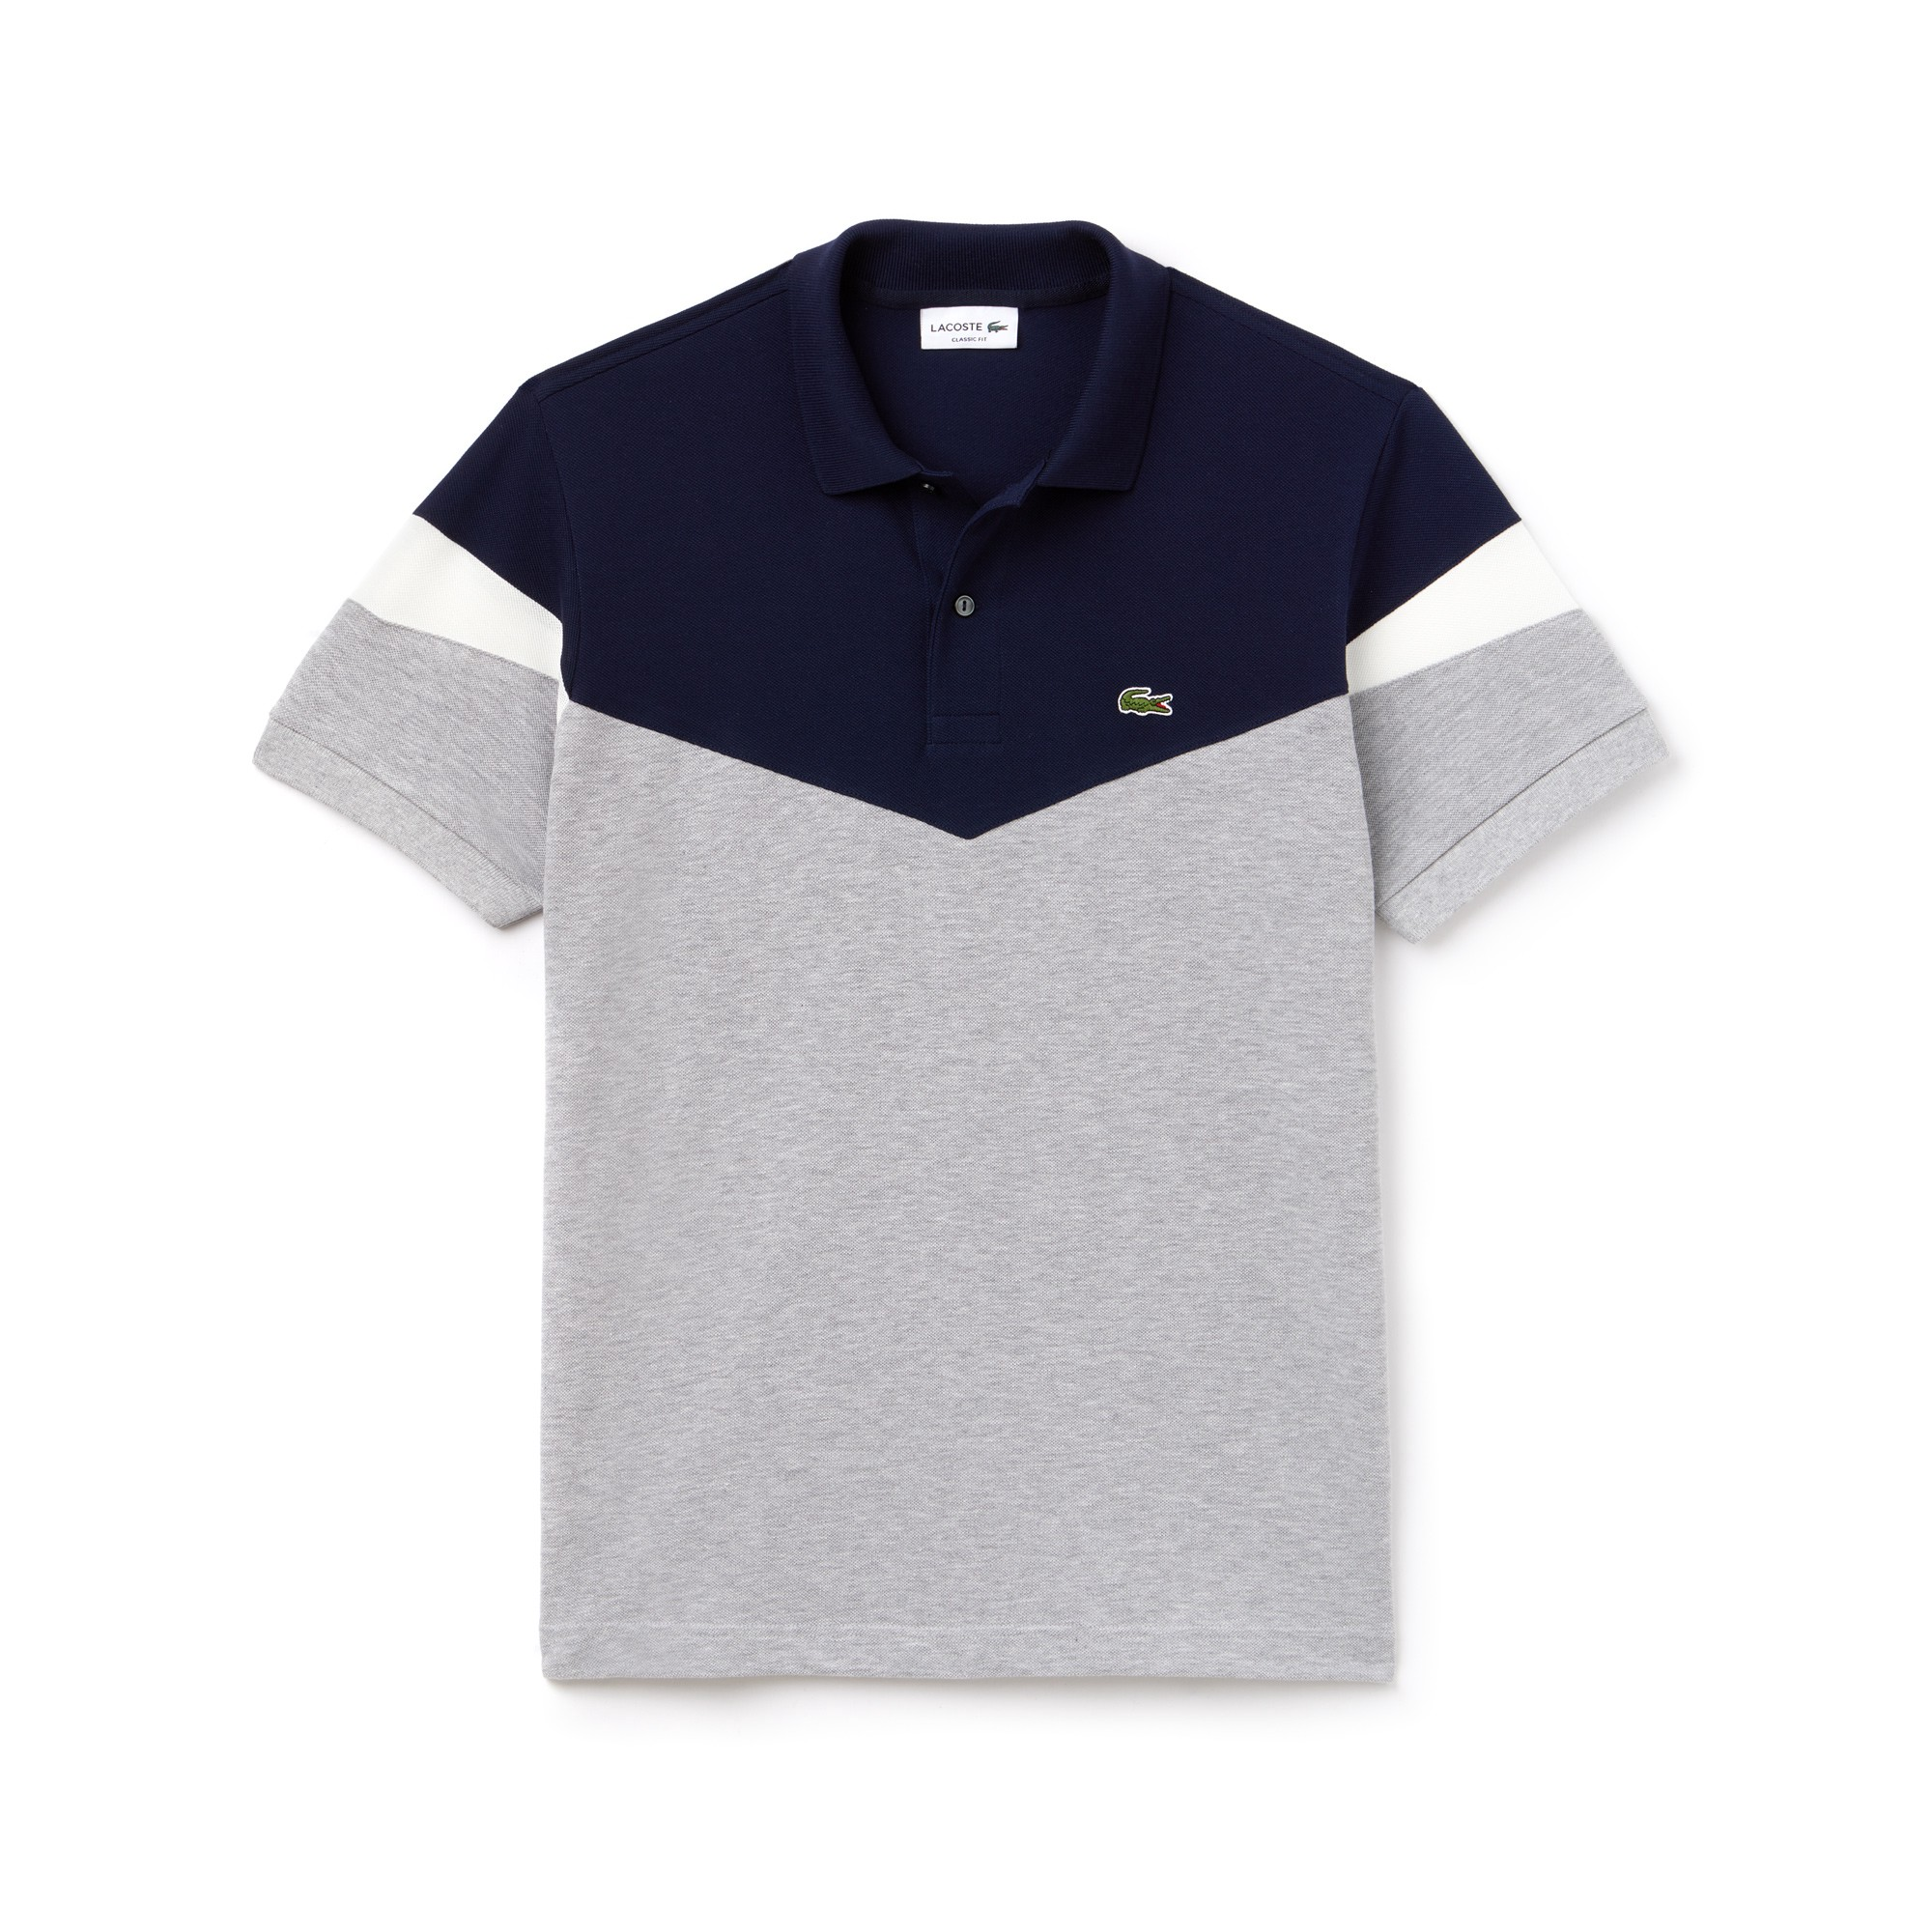 9c368d36 Lacoste Men's Classic Fit Colorblock Cotton Petit Piqué Polo - Navy Blue/ Black-Flour L 5 Green